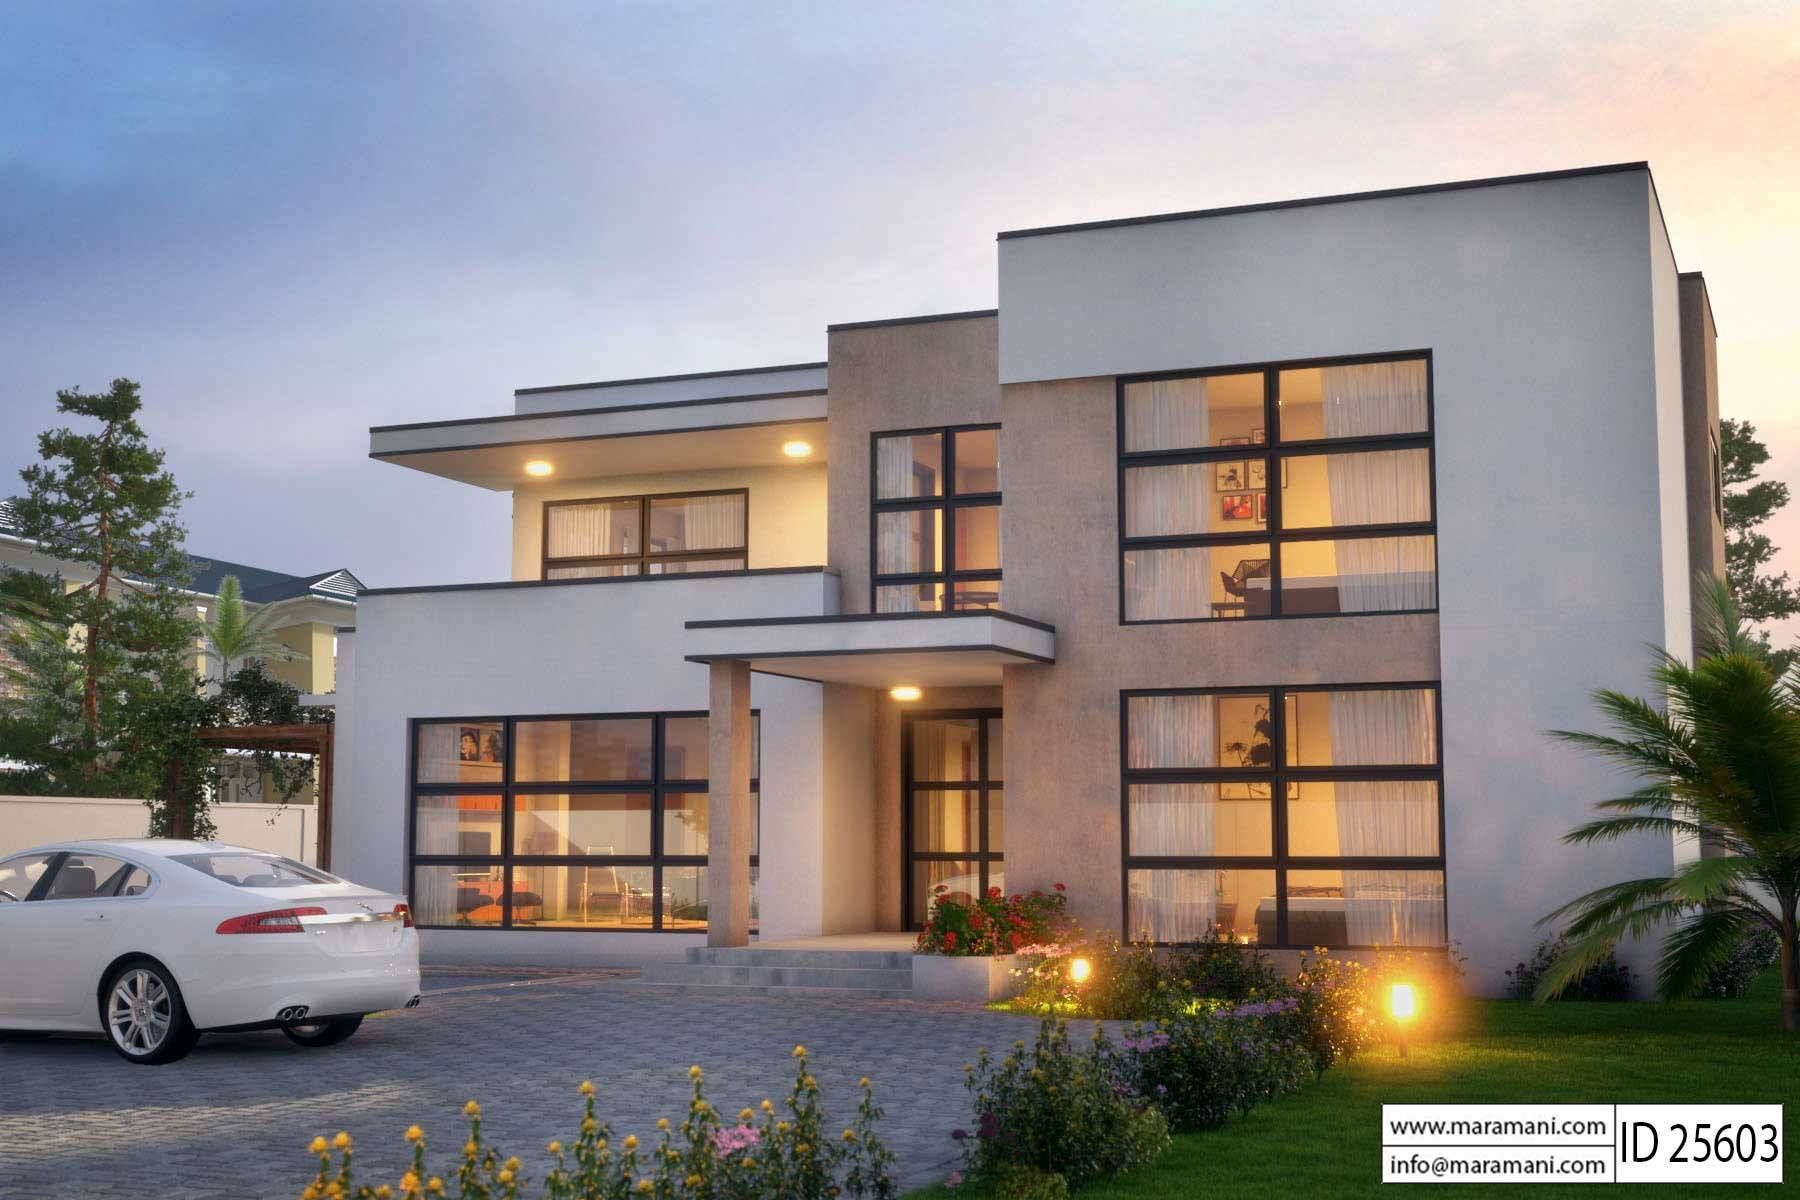 Modern 5 Bedroom House Design Id 25603 Floor Plans By Maramani Big Modern Houses Architectural House Plans Modern House Floor Plans